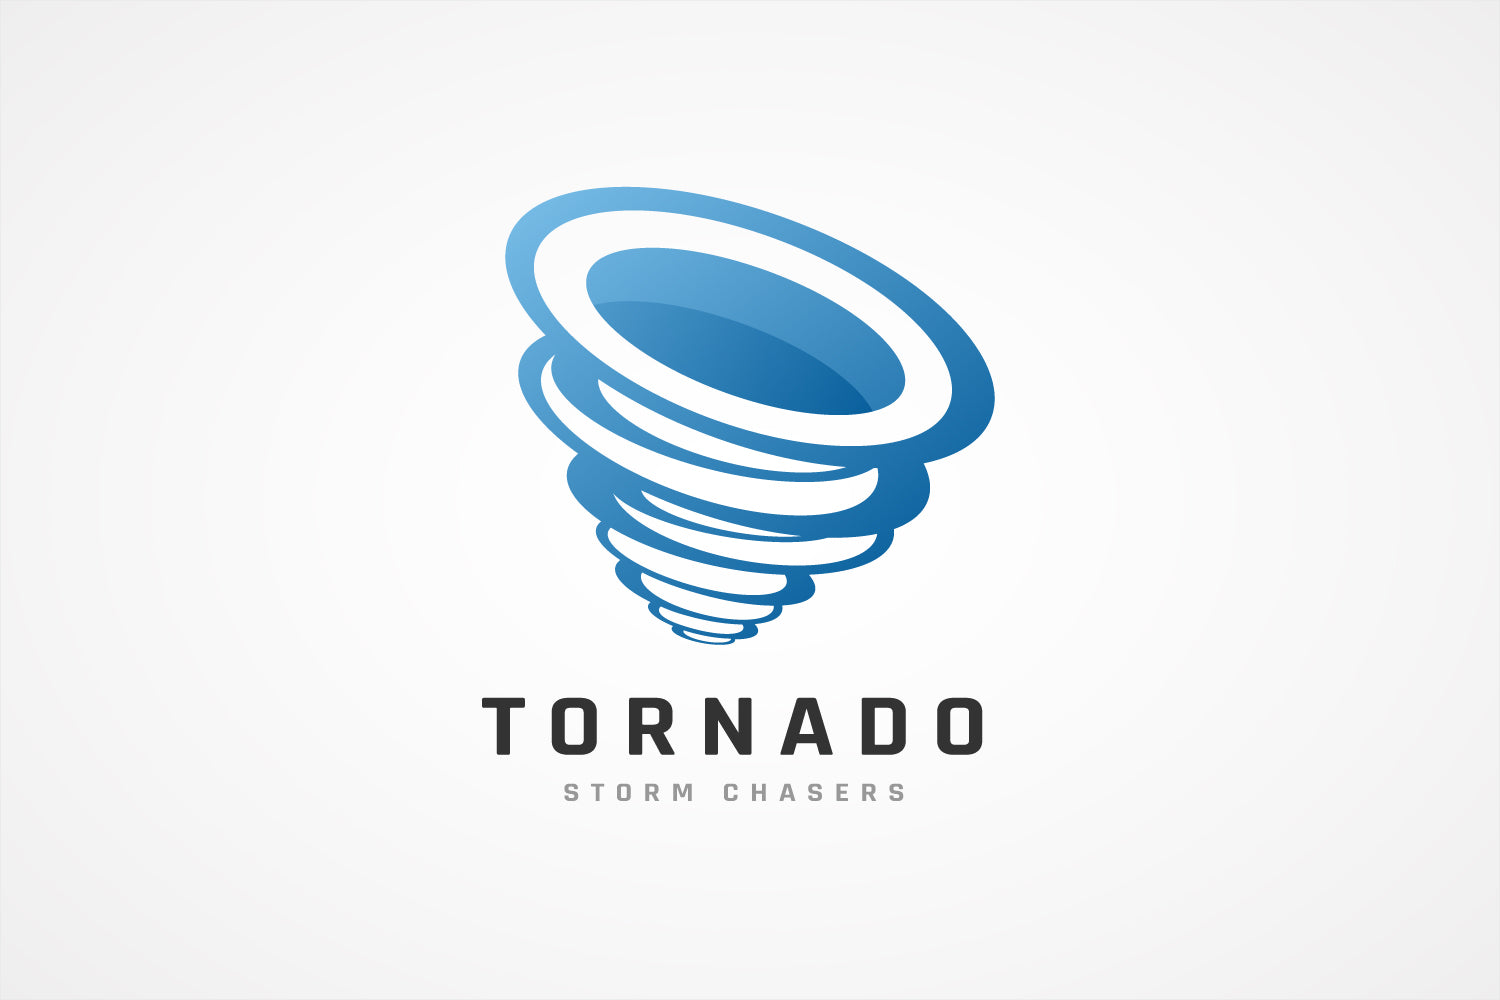 Tornado Storm Chasers Logo